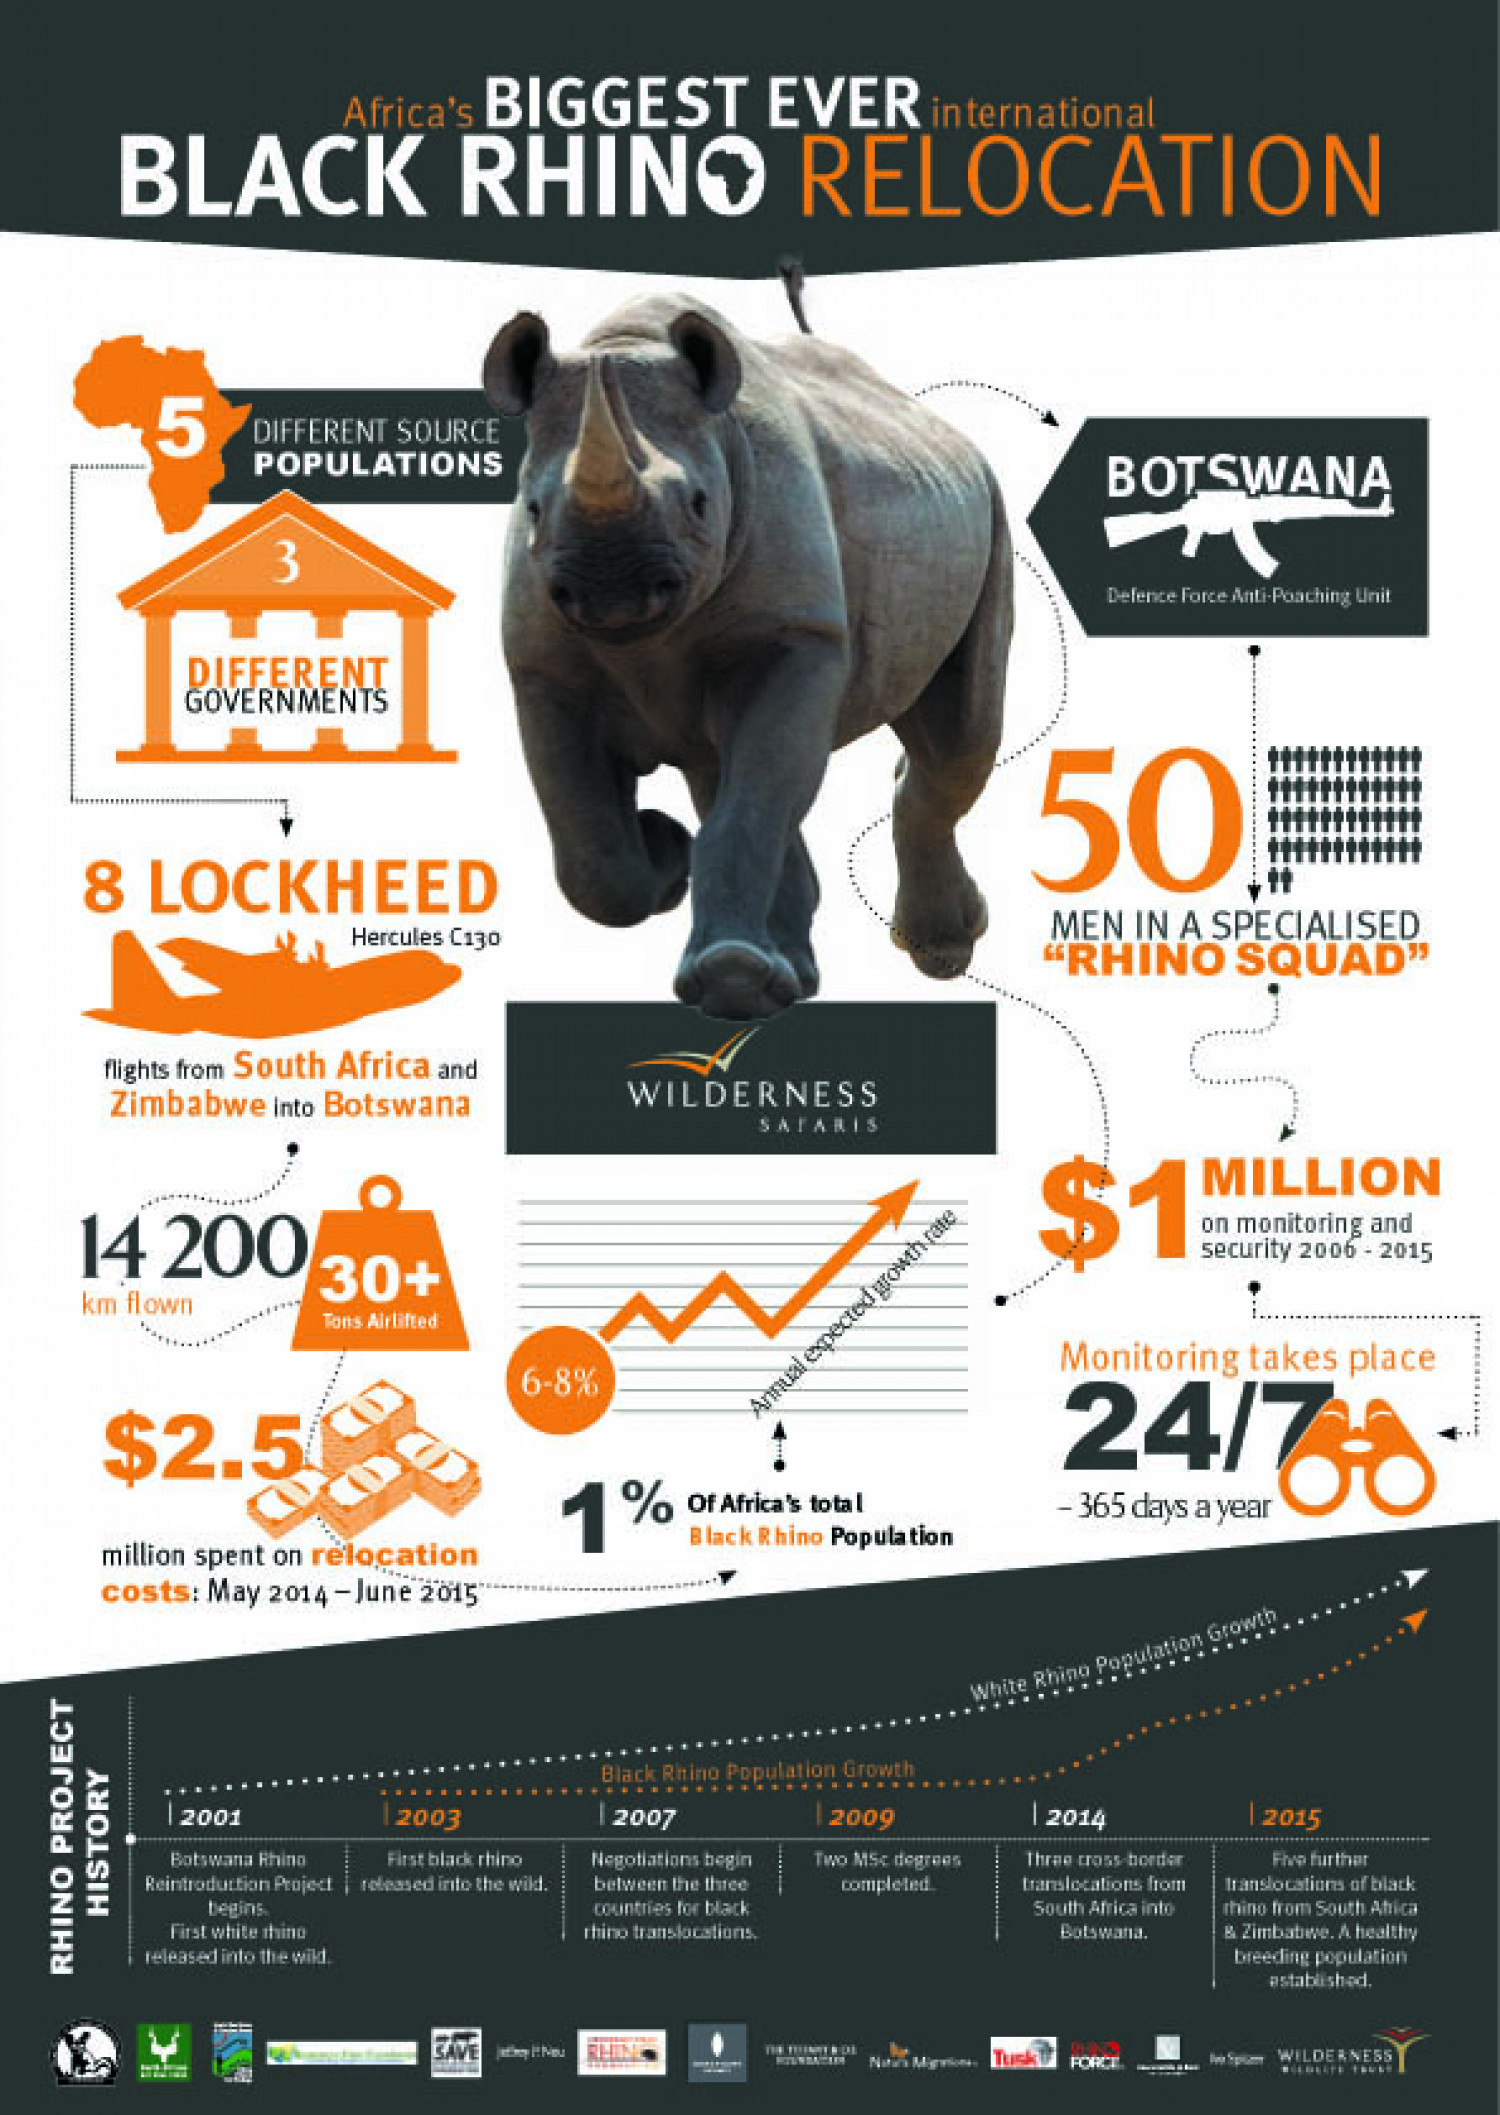 Africa's biggest ever black rhino relocation Infographic